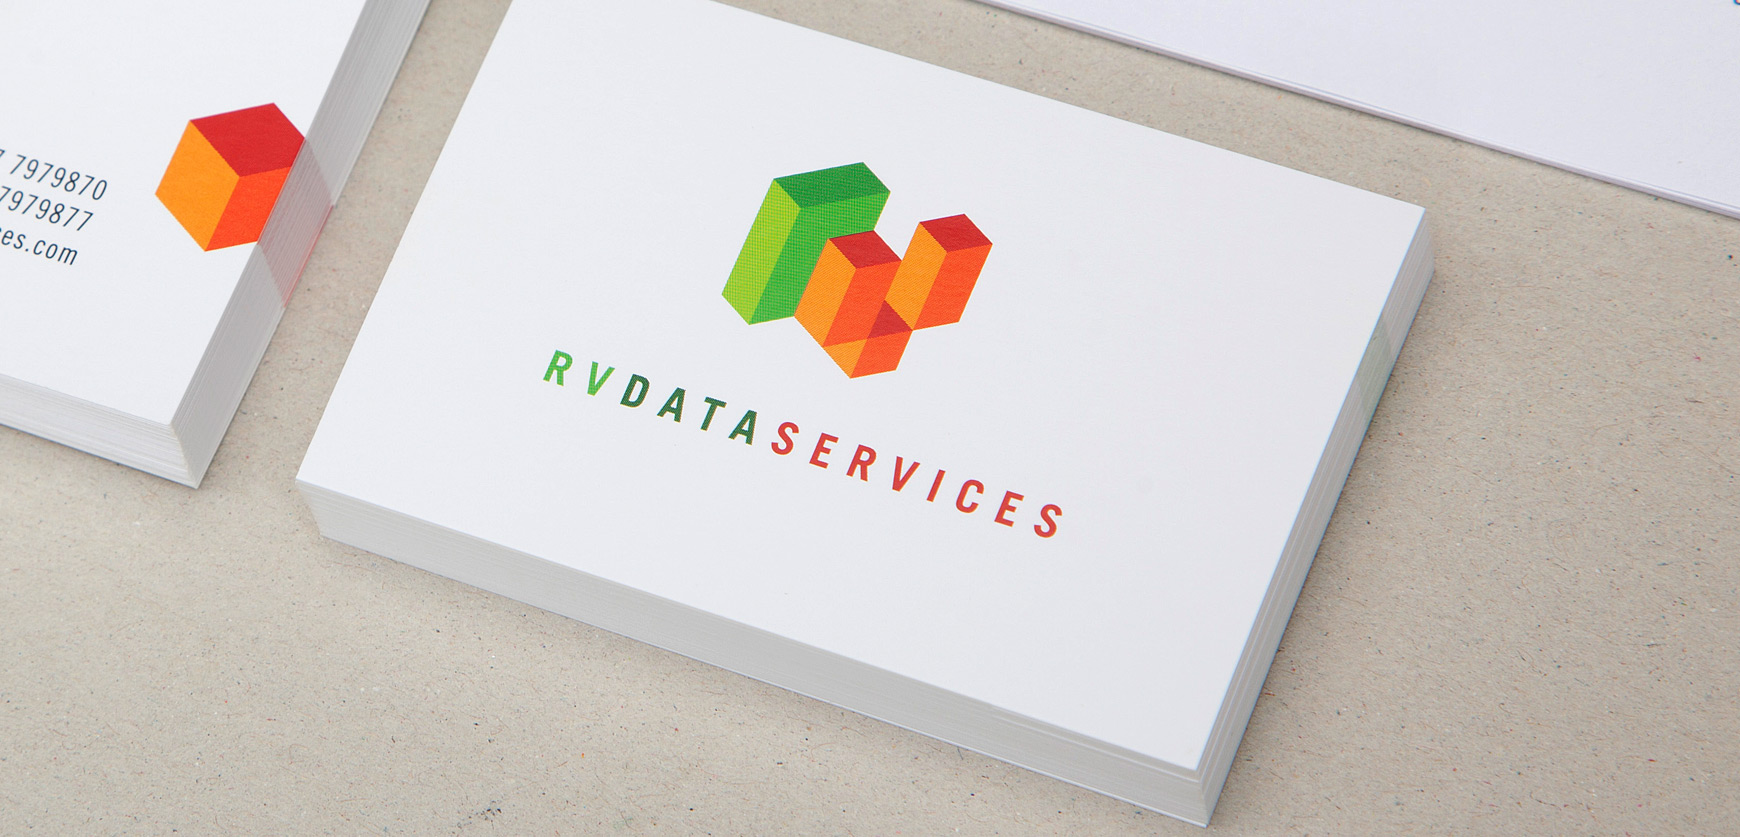 RV Dataservices Schaufenster